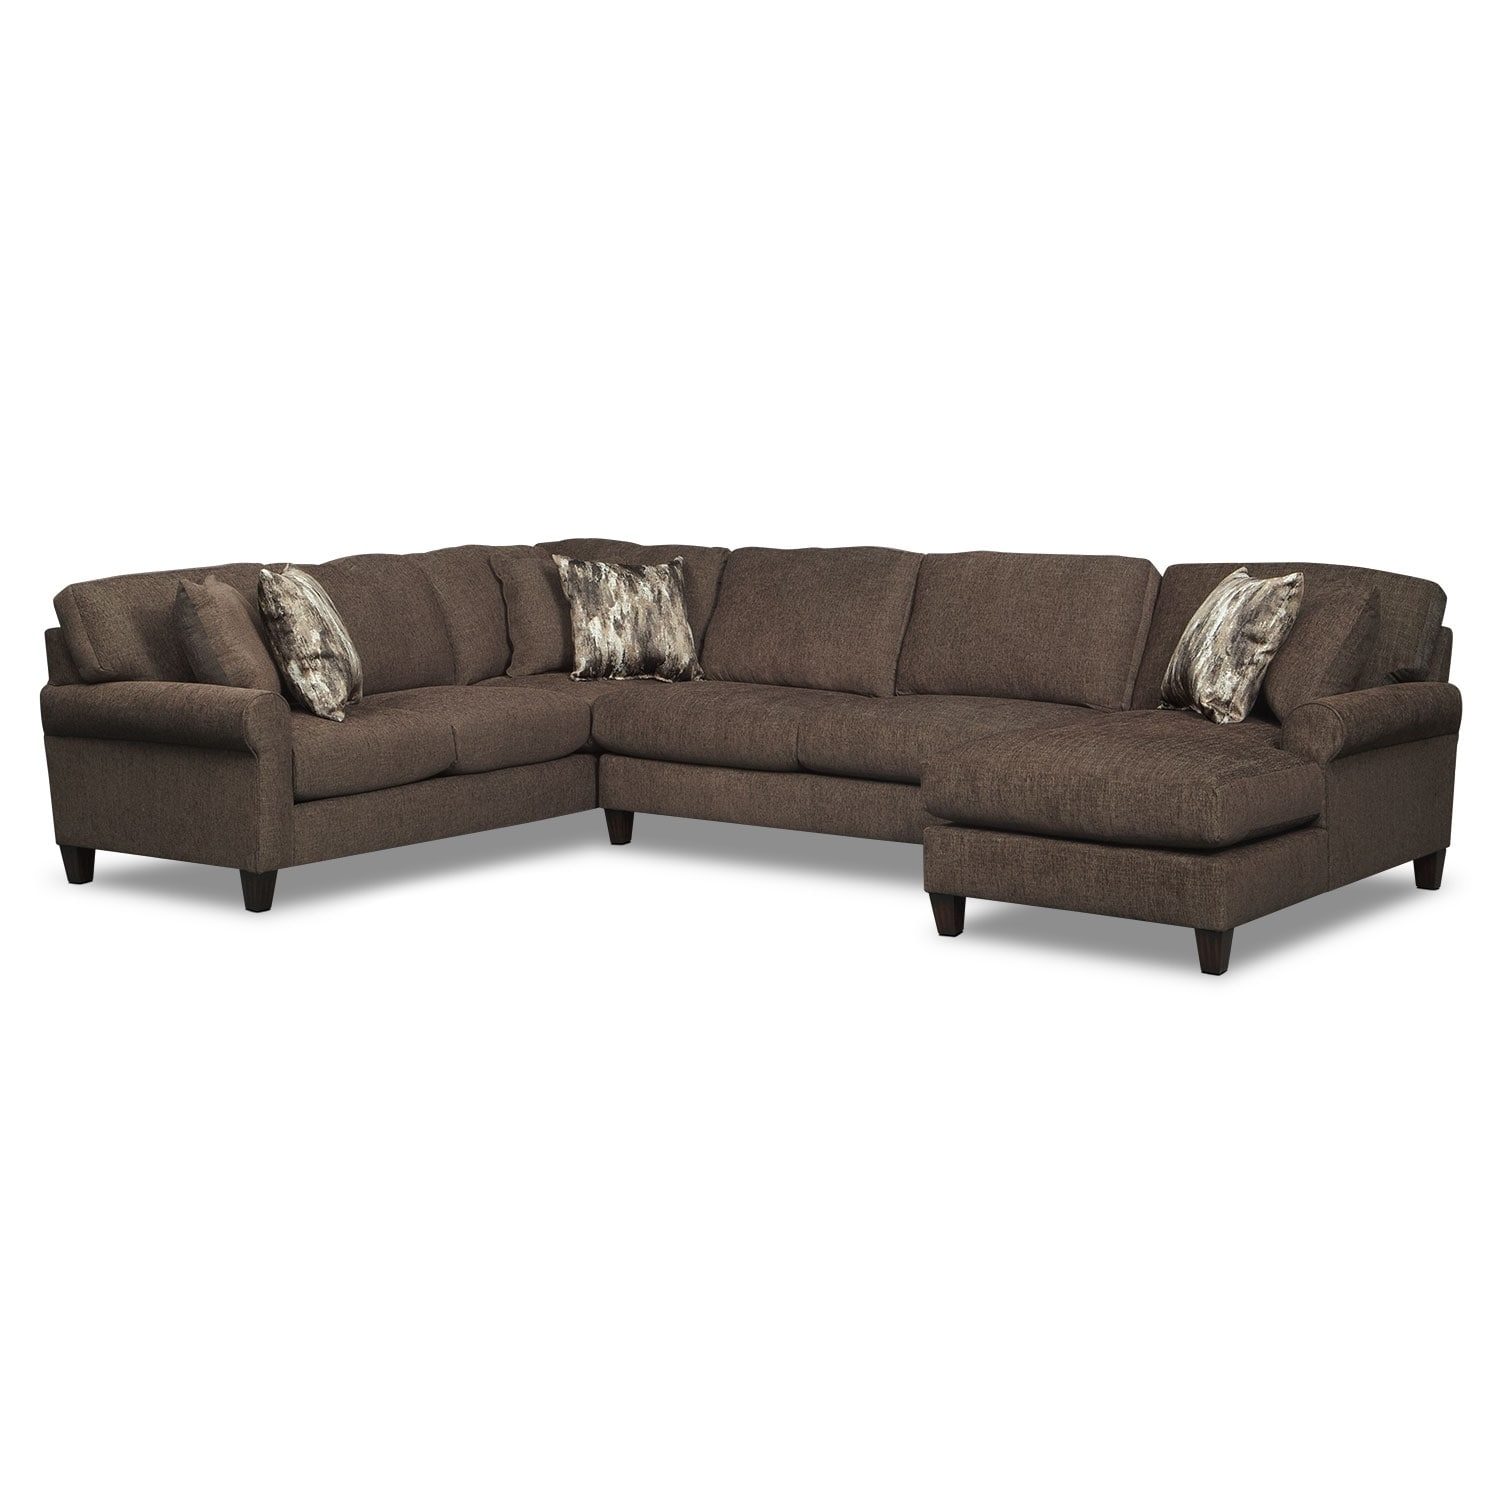 Living Room Furniture - Karma 3-Piece Right-Facing Sectional - Smoke